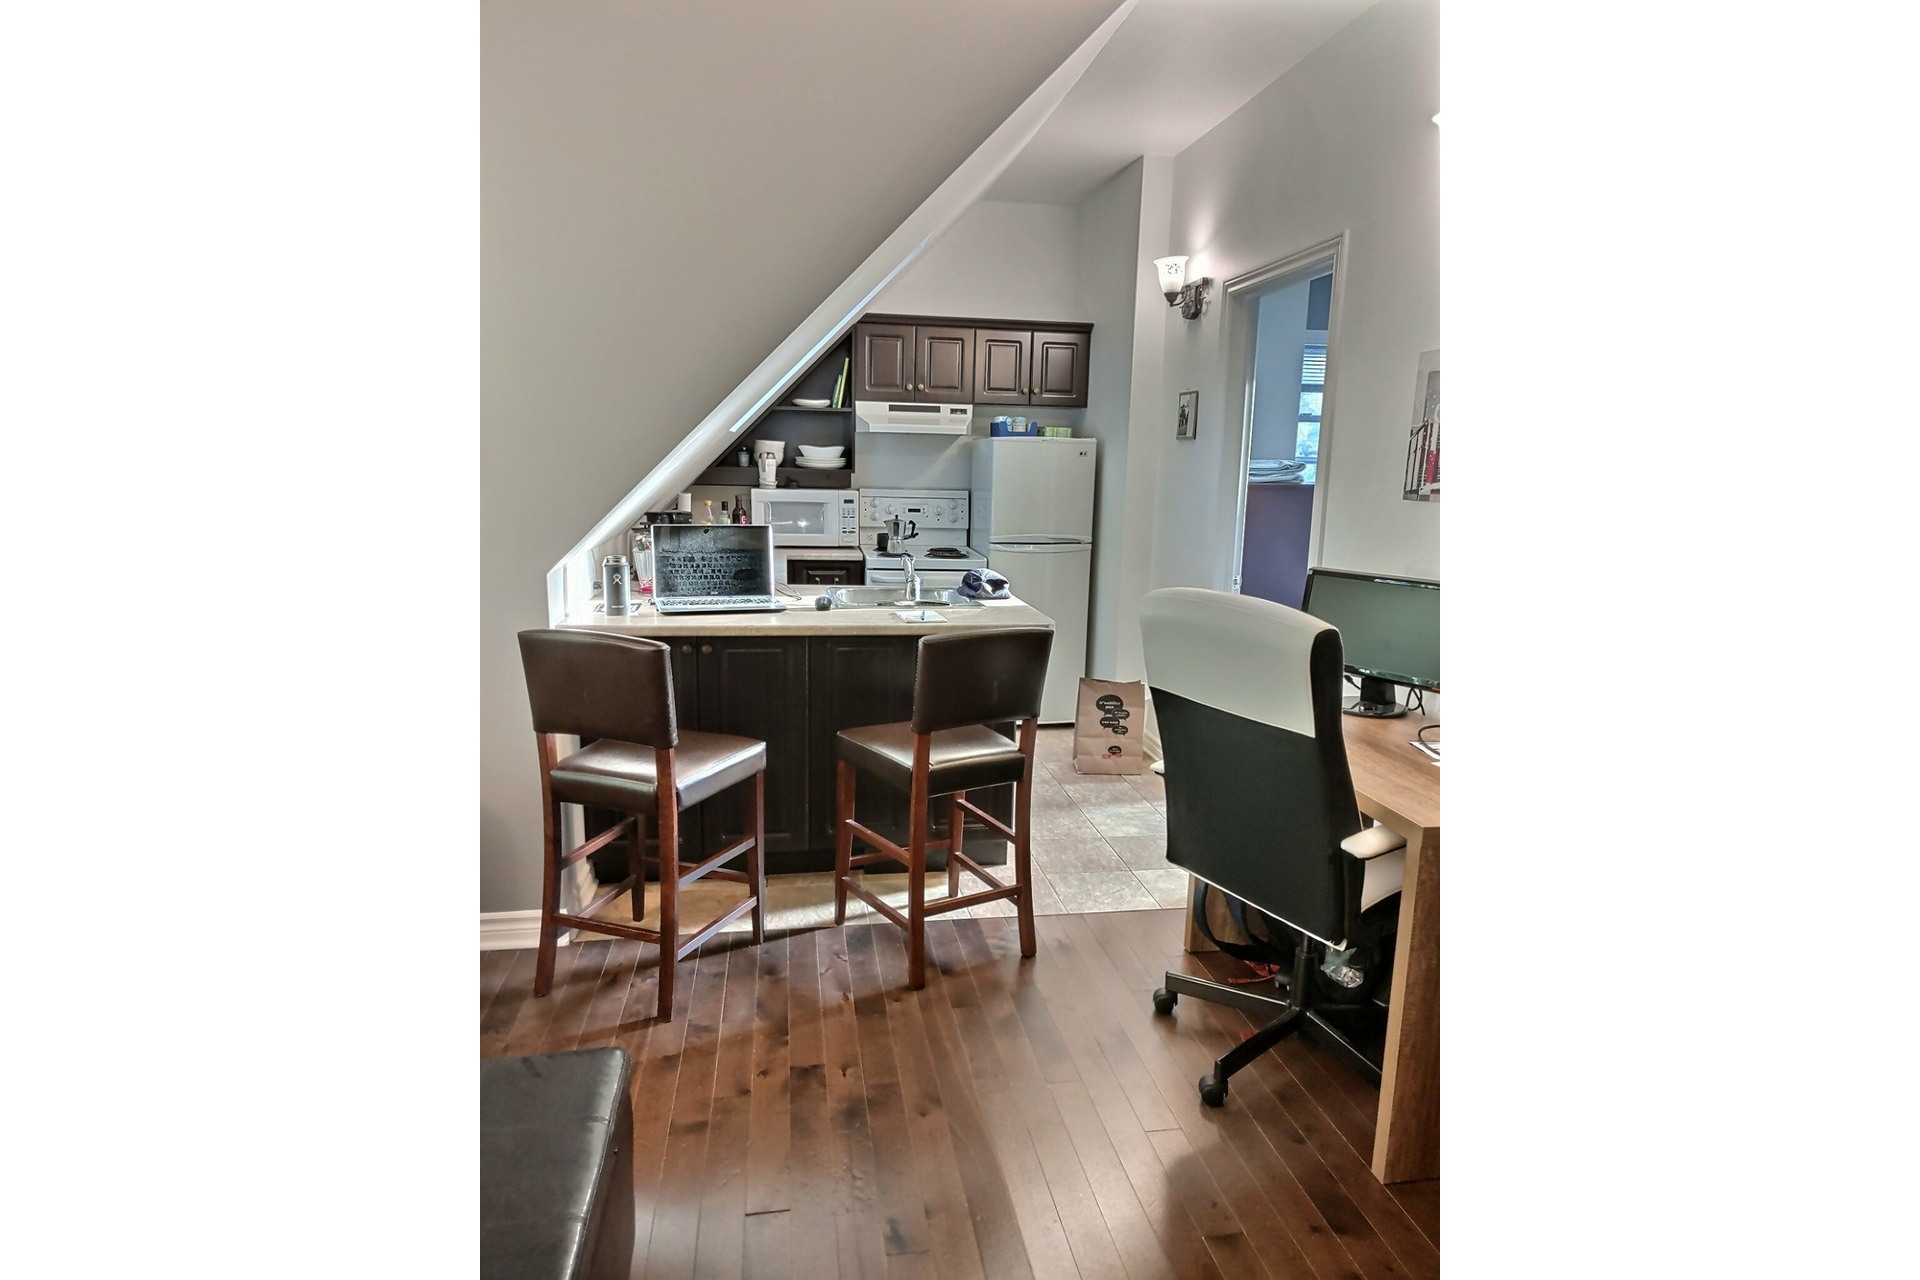 image 10 - Apartment For rent Dorval - 4 rooms